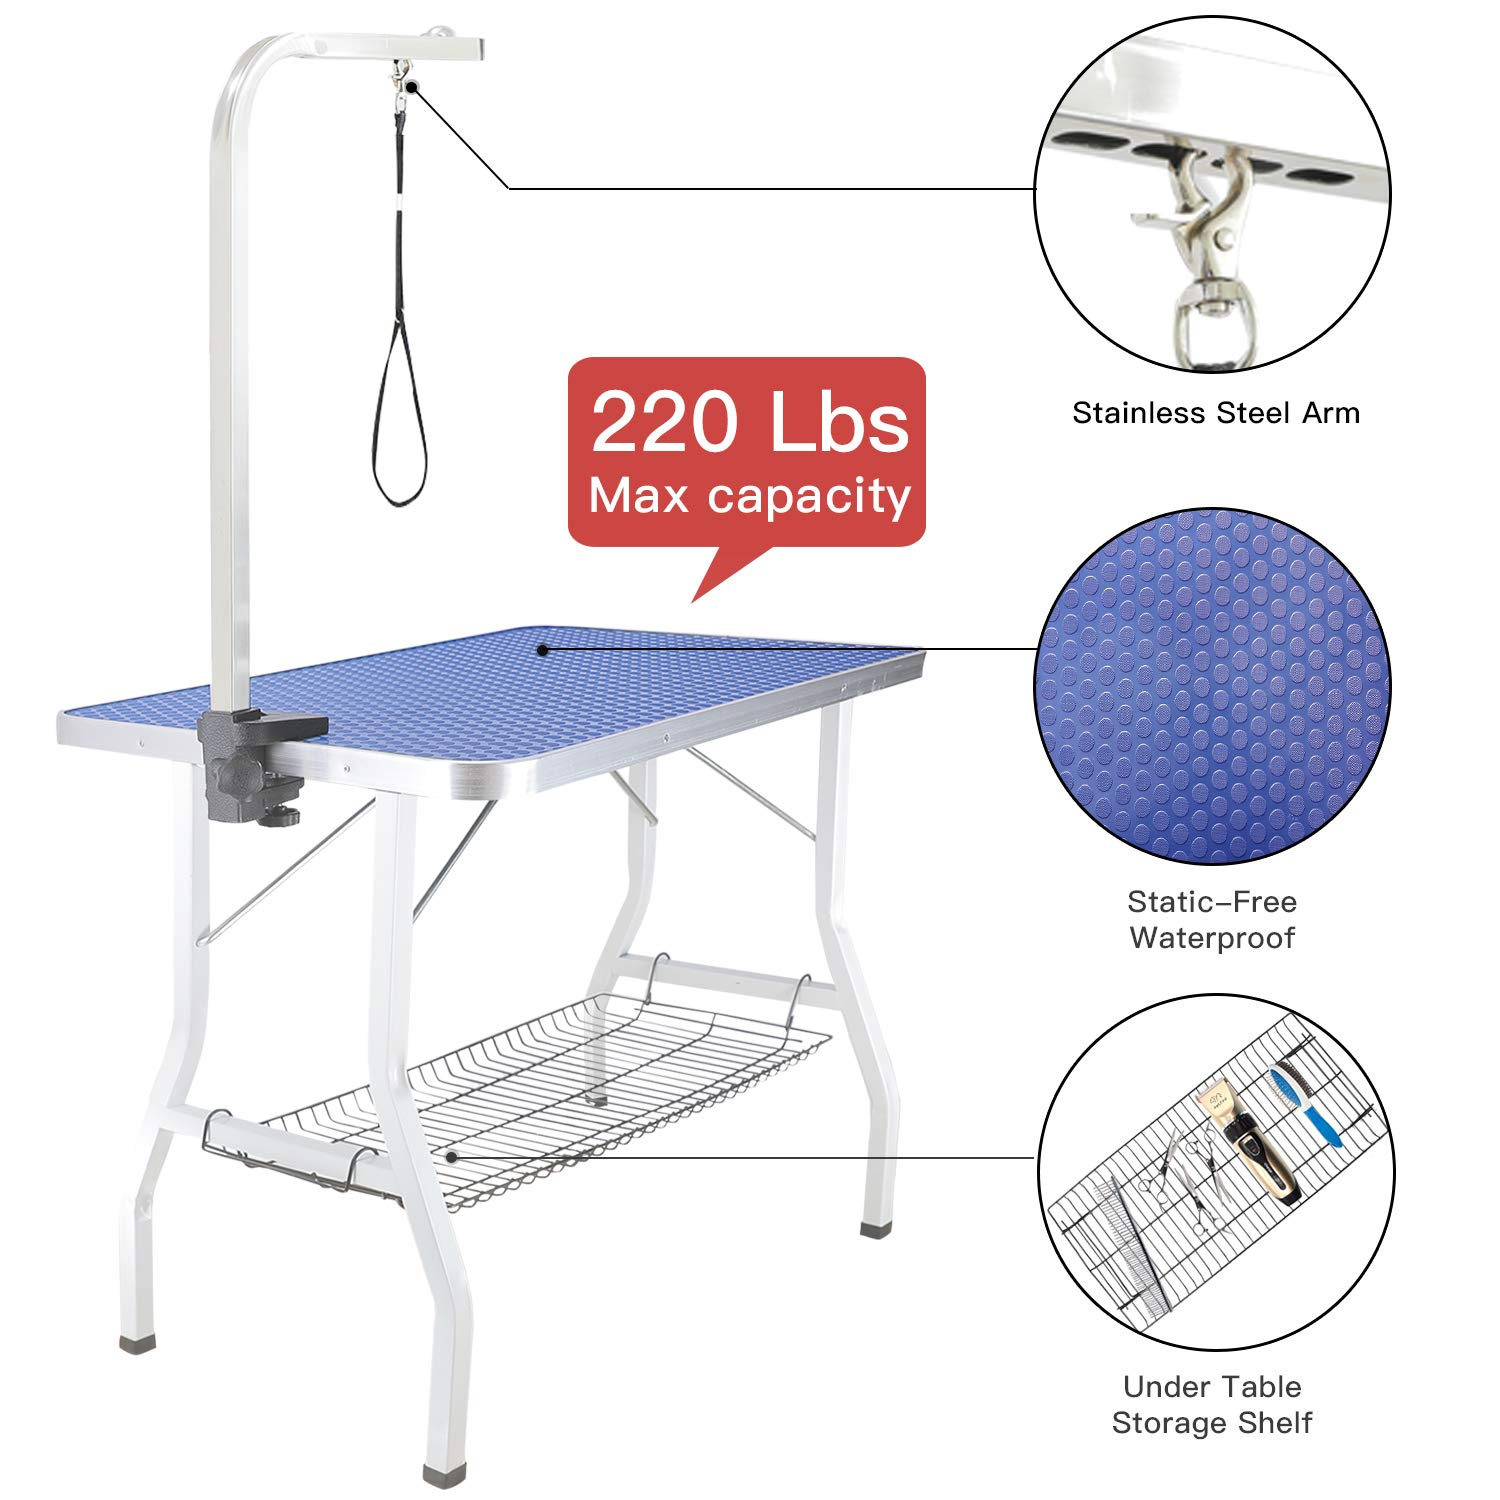 ITORI Pet Dog Grooming Table for Small Dog, Professional 32 in Foldable Portable Drying Table with Adjustable Height Arm Clamp&Noose, Metal Mesh Tray, Maximum Capacity Up to 250lbs